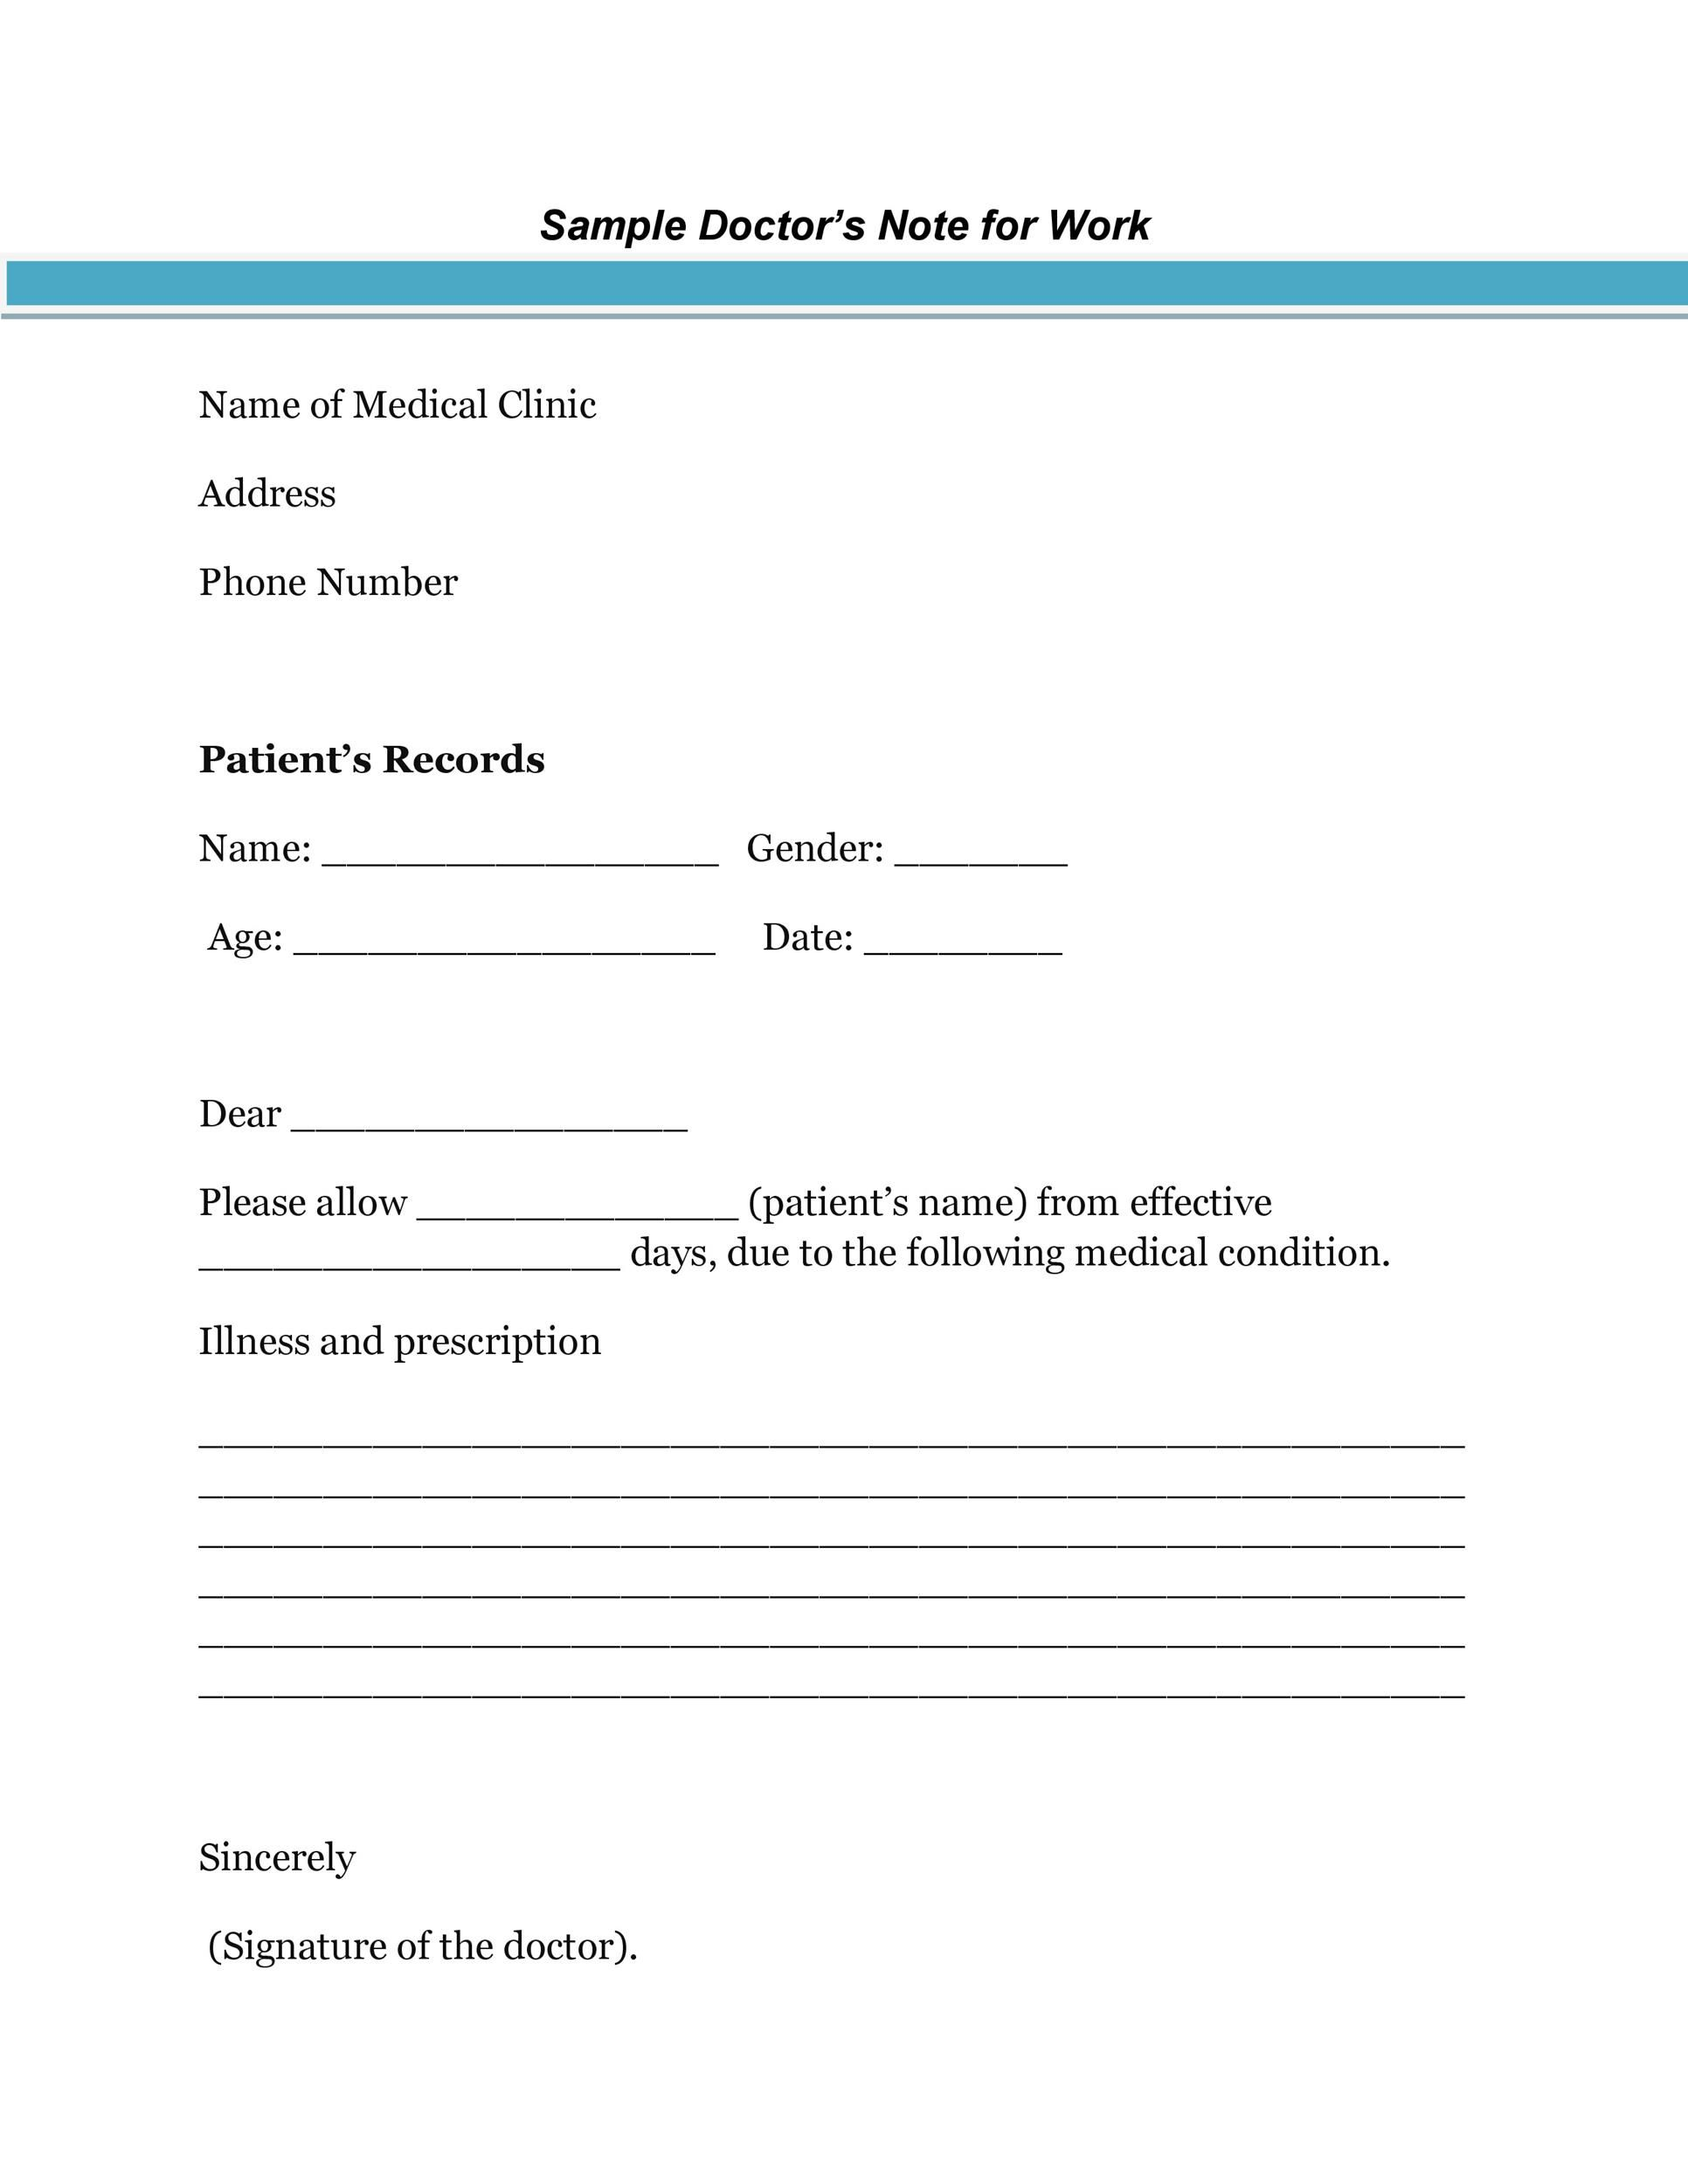 Doctor Excuse Template For Work Best Of Doctor S Note Templates 28 Blank Formats To Create Mar Doctors Note Template Dr Note For Work Doctors Excuse Template